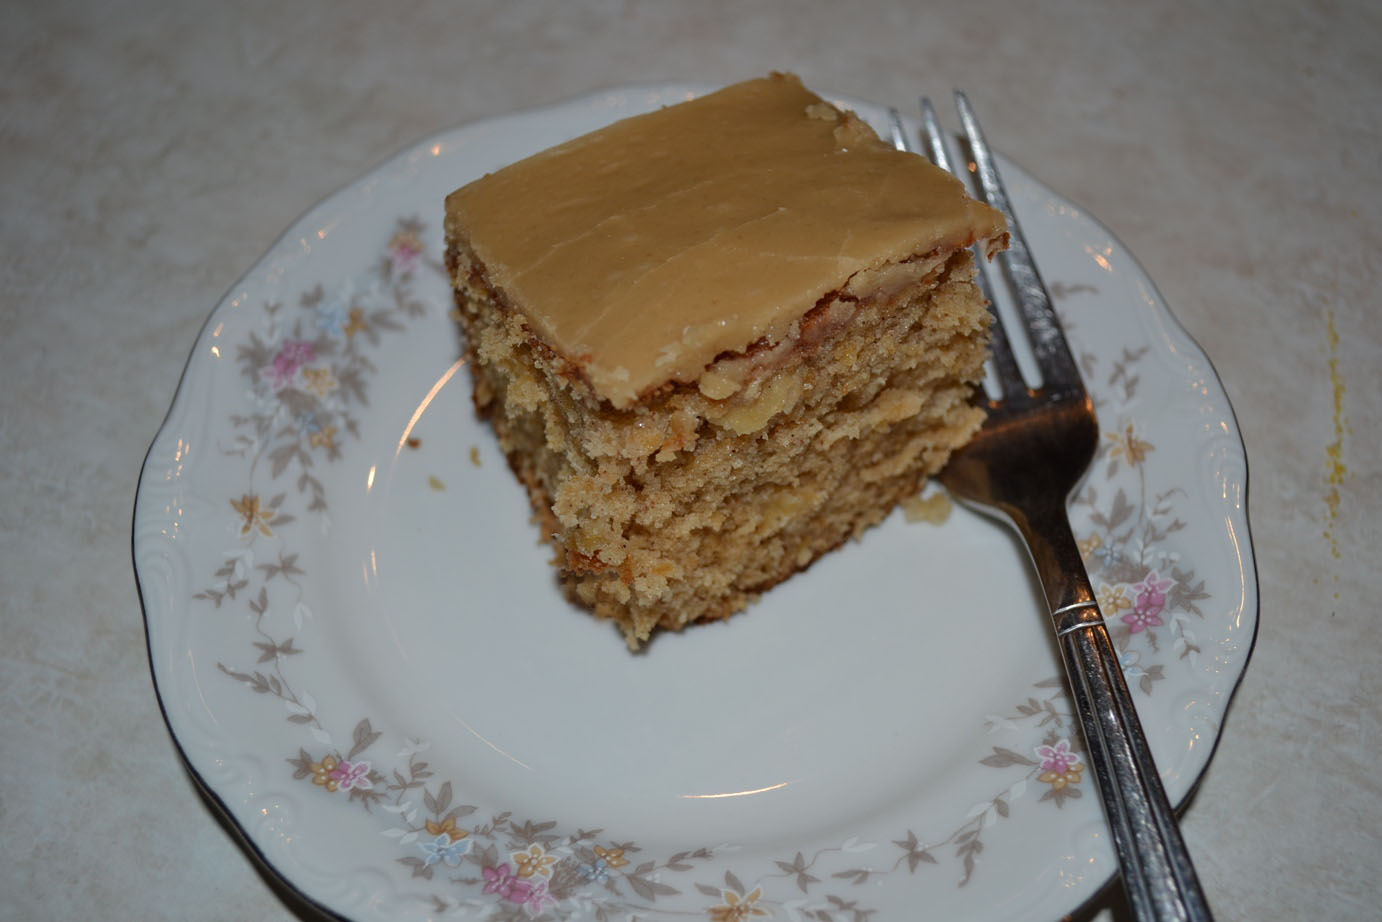 Piece of apple cake with caramel icing on a plate with a fork